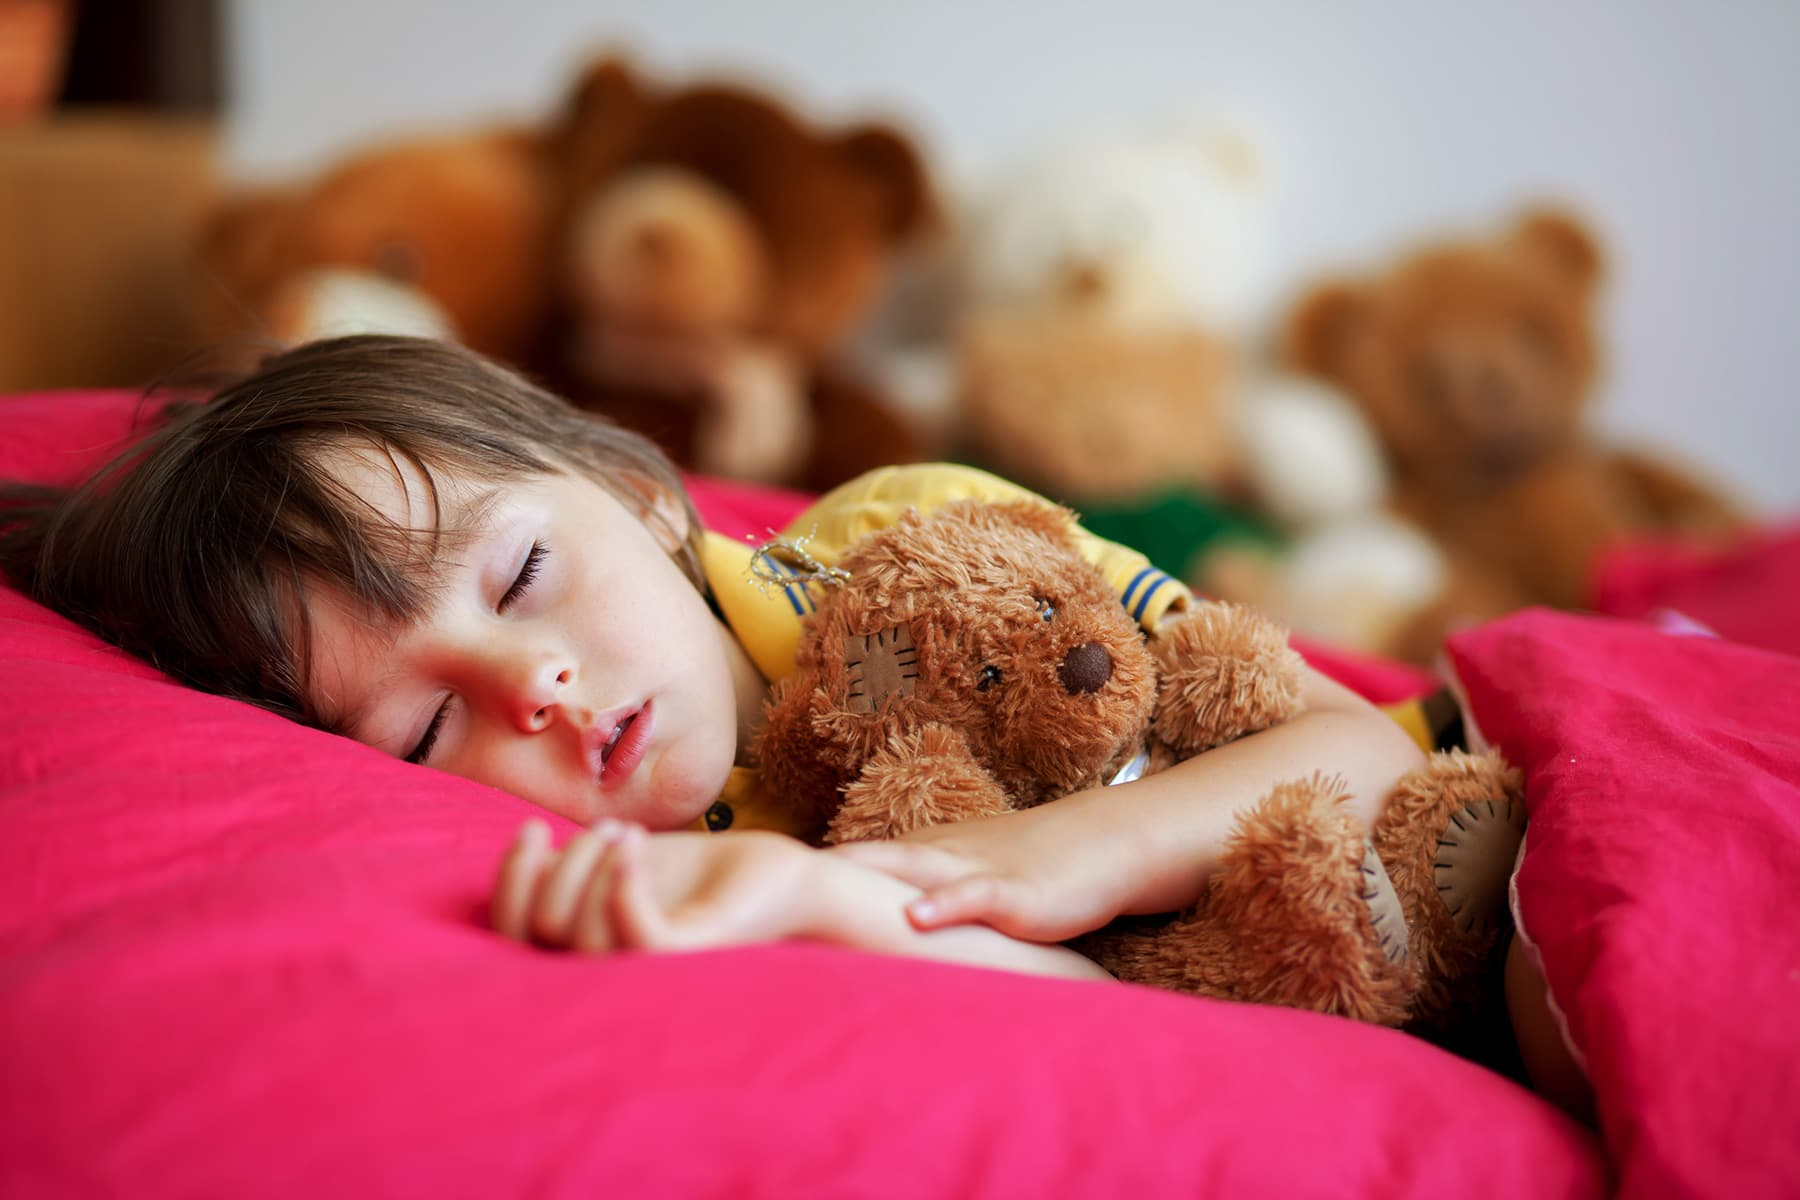 photo of boy sleeping with teddy bear other